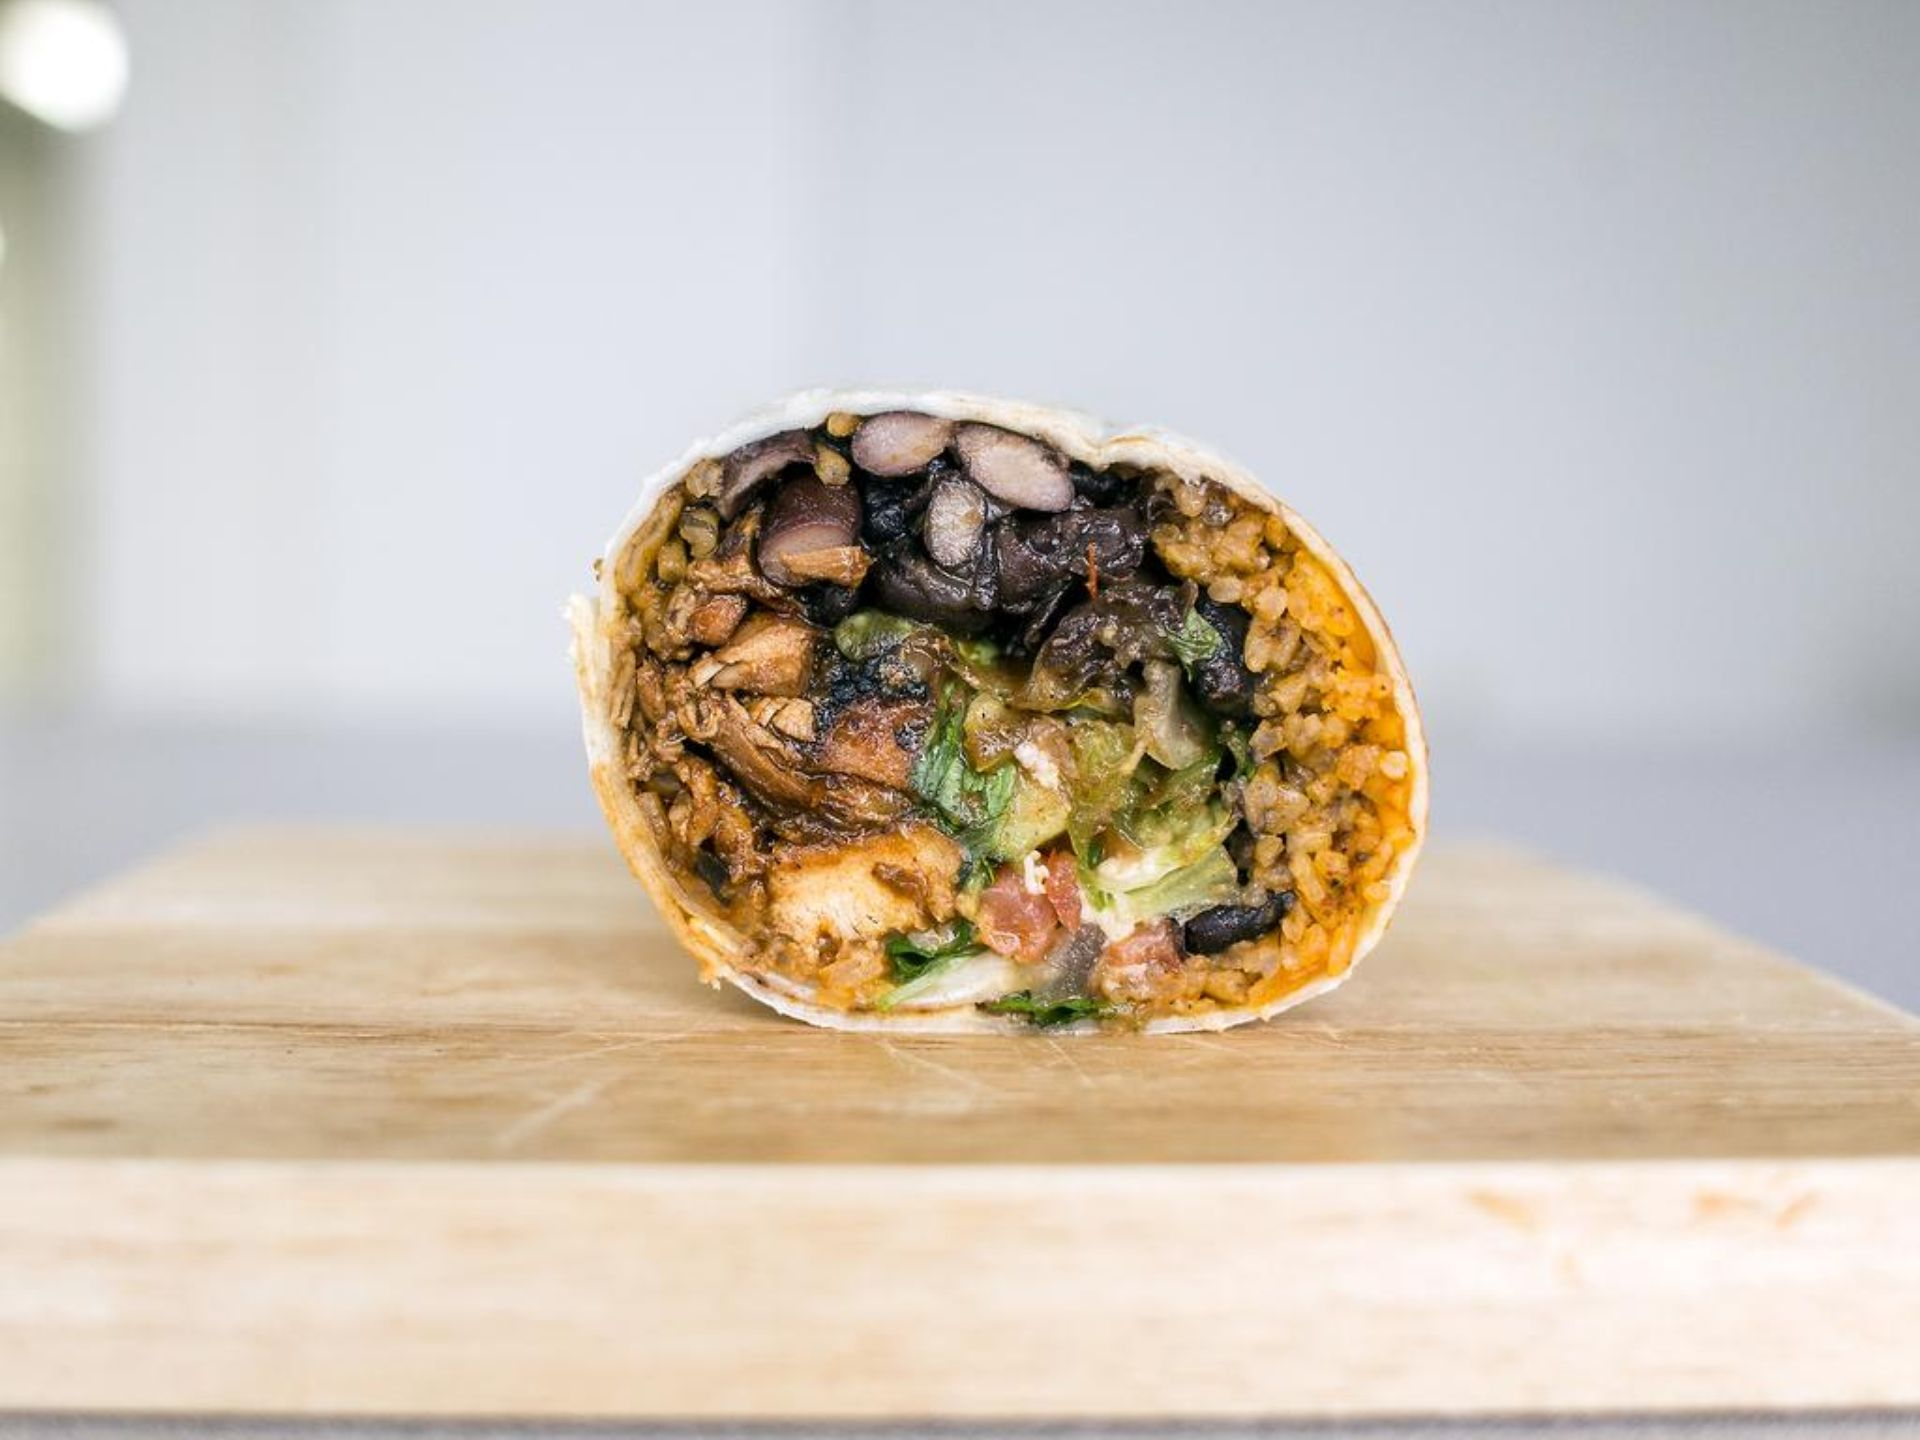 https://www.reddit.com/r/FoodPorn/comments/2sow62/cross_section_of_a_chicken_burrito_from_a_local/